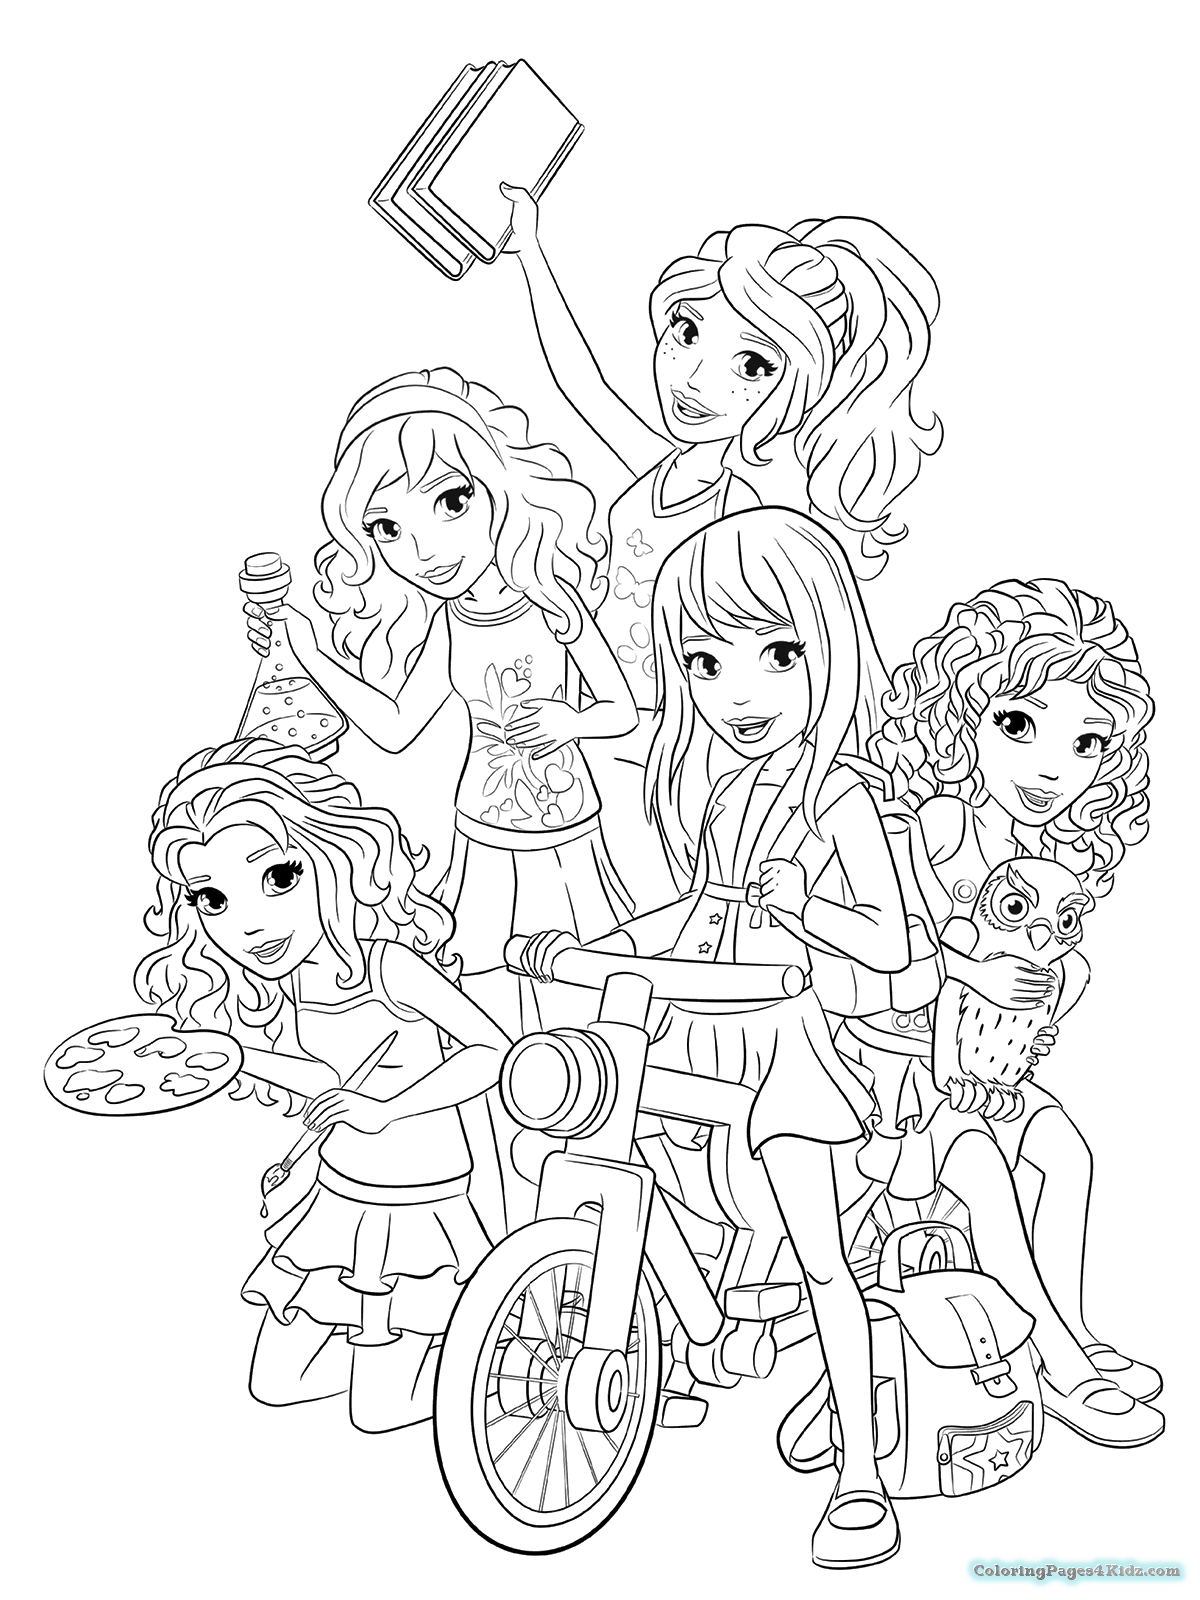 Lego Friends Coloring Pages childlifeme Payton